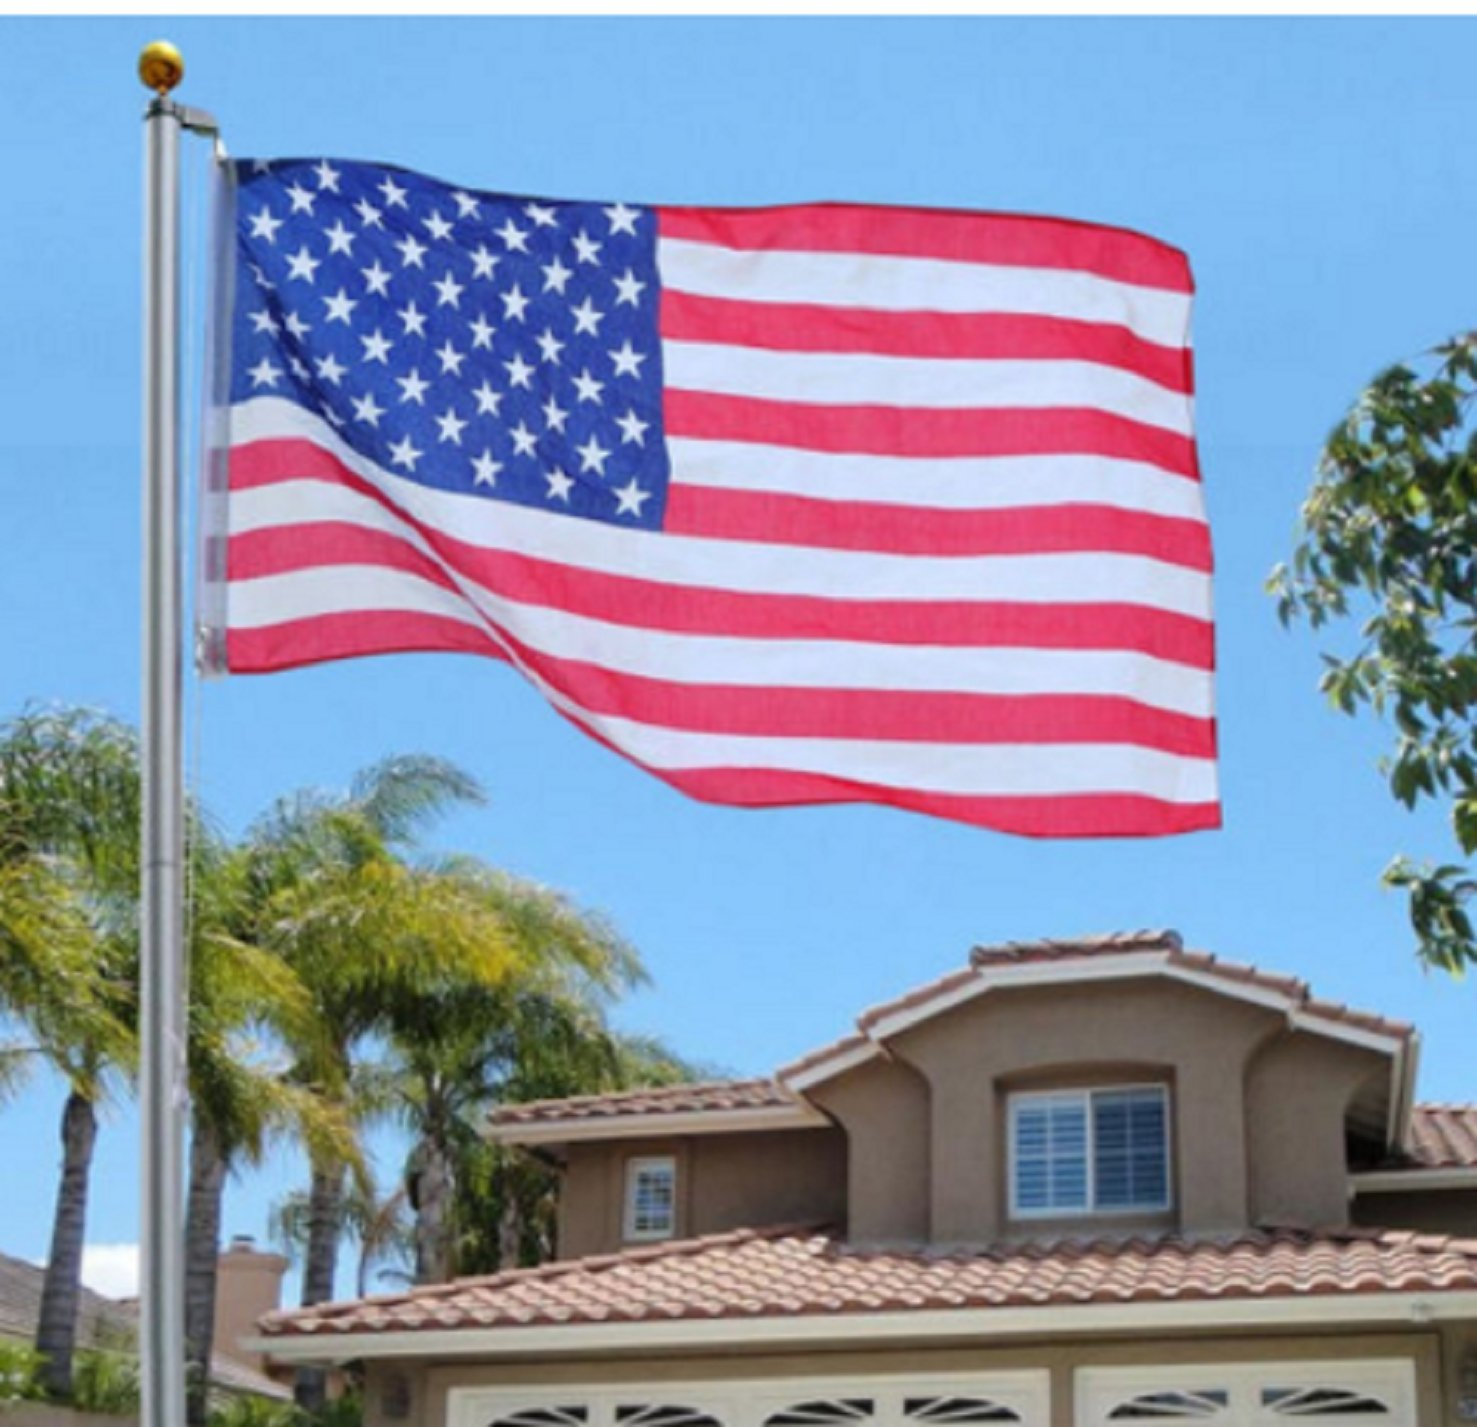 USA Premium Store 25Ft Aluminum Sectional Flagpole Kit Outdoor Halyard Pole + 1PC US American Flag by USA Premium Store